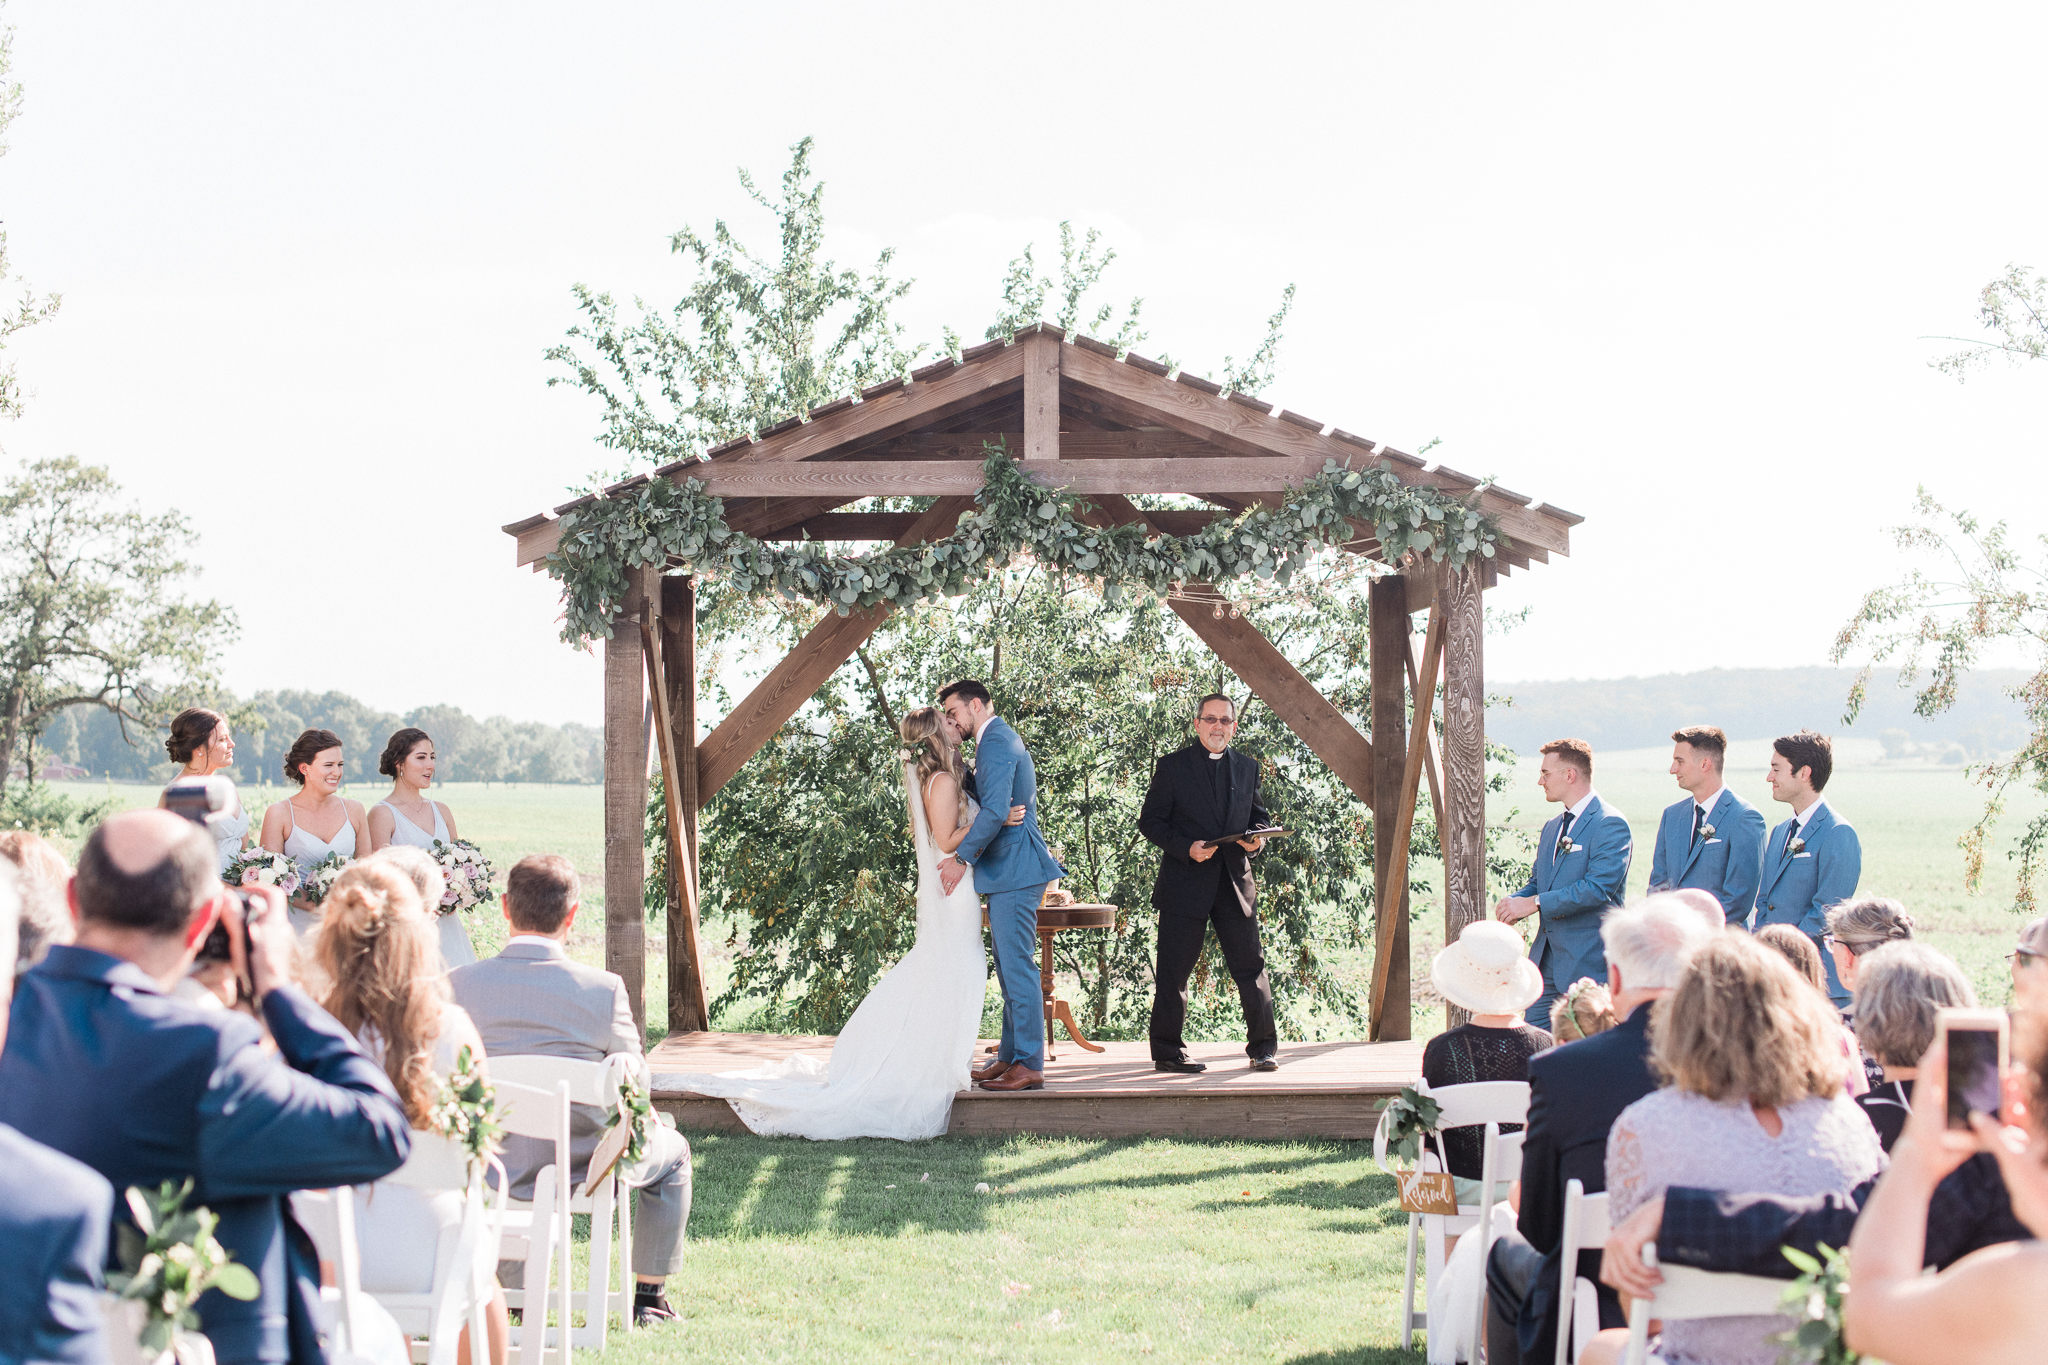 Outdoor Wedding Venues Light + Air Chicago Wedding and Engagement Photographer Emerson Creek Pottery + Tea Room Wedding Photos